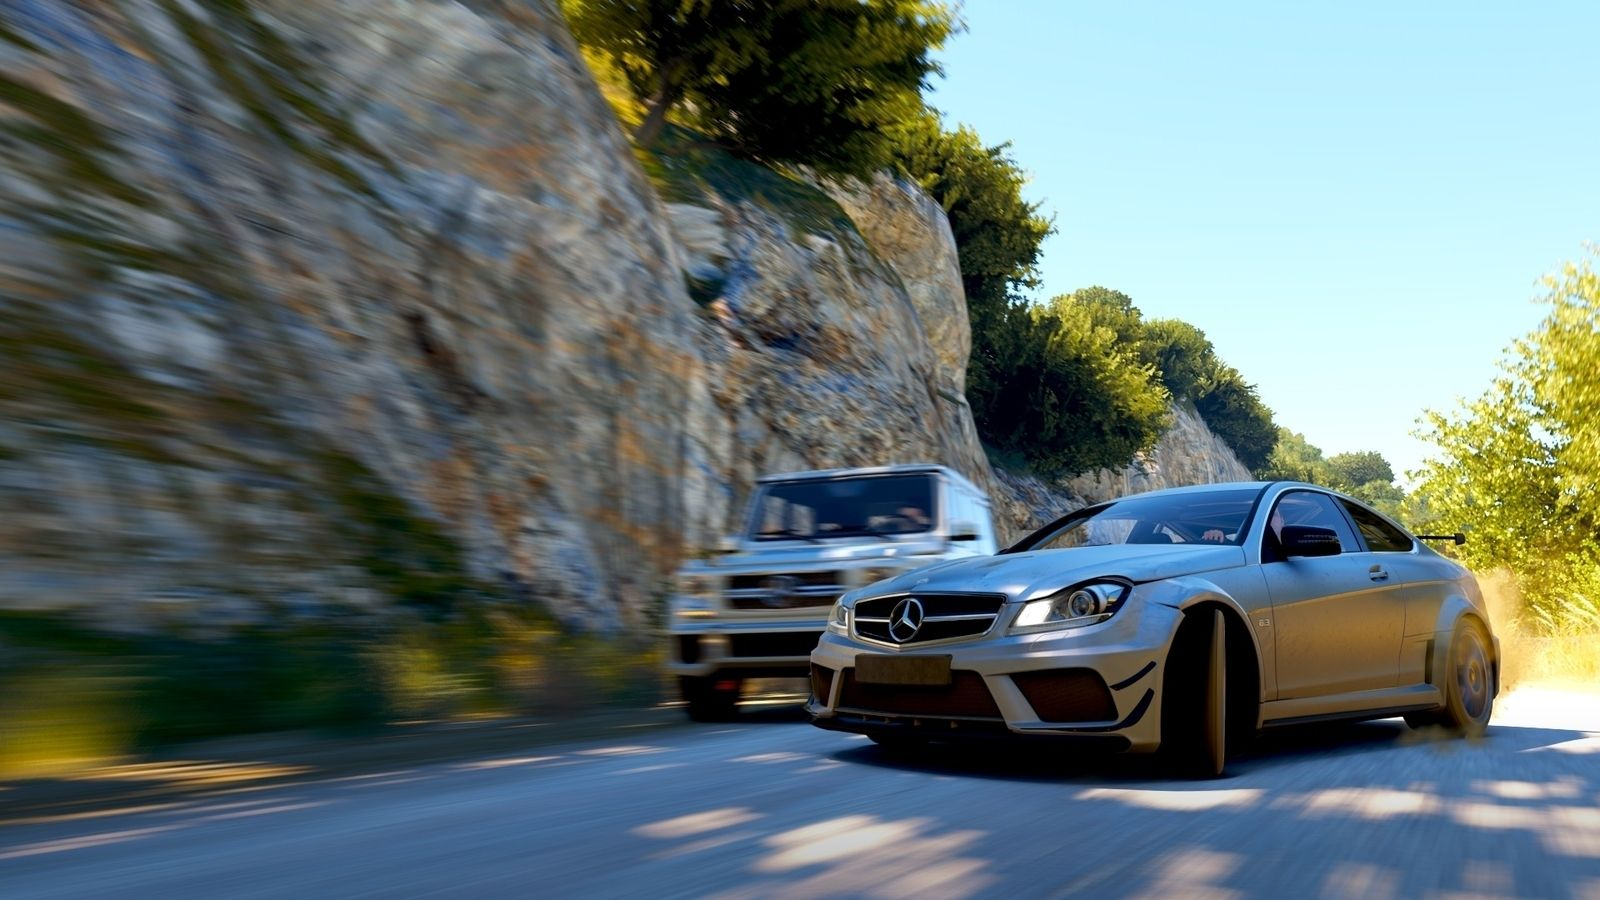 Forza Horizon 2 Is Out Now Exclusively For Microsoft Xbox One And Xbox 360 There You Ll Have The Chance To Drive With Some Of Our Most Exclusive Cars C 63 Amg